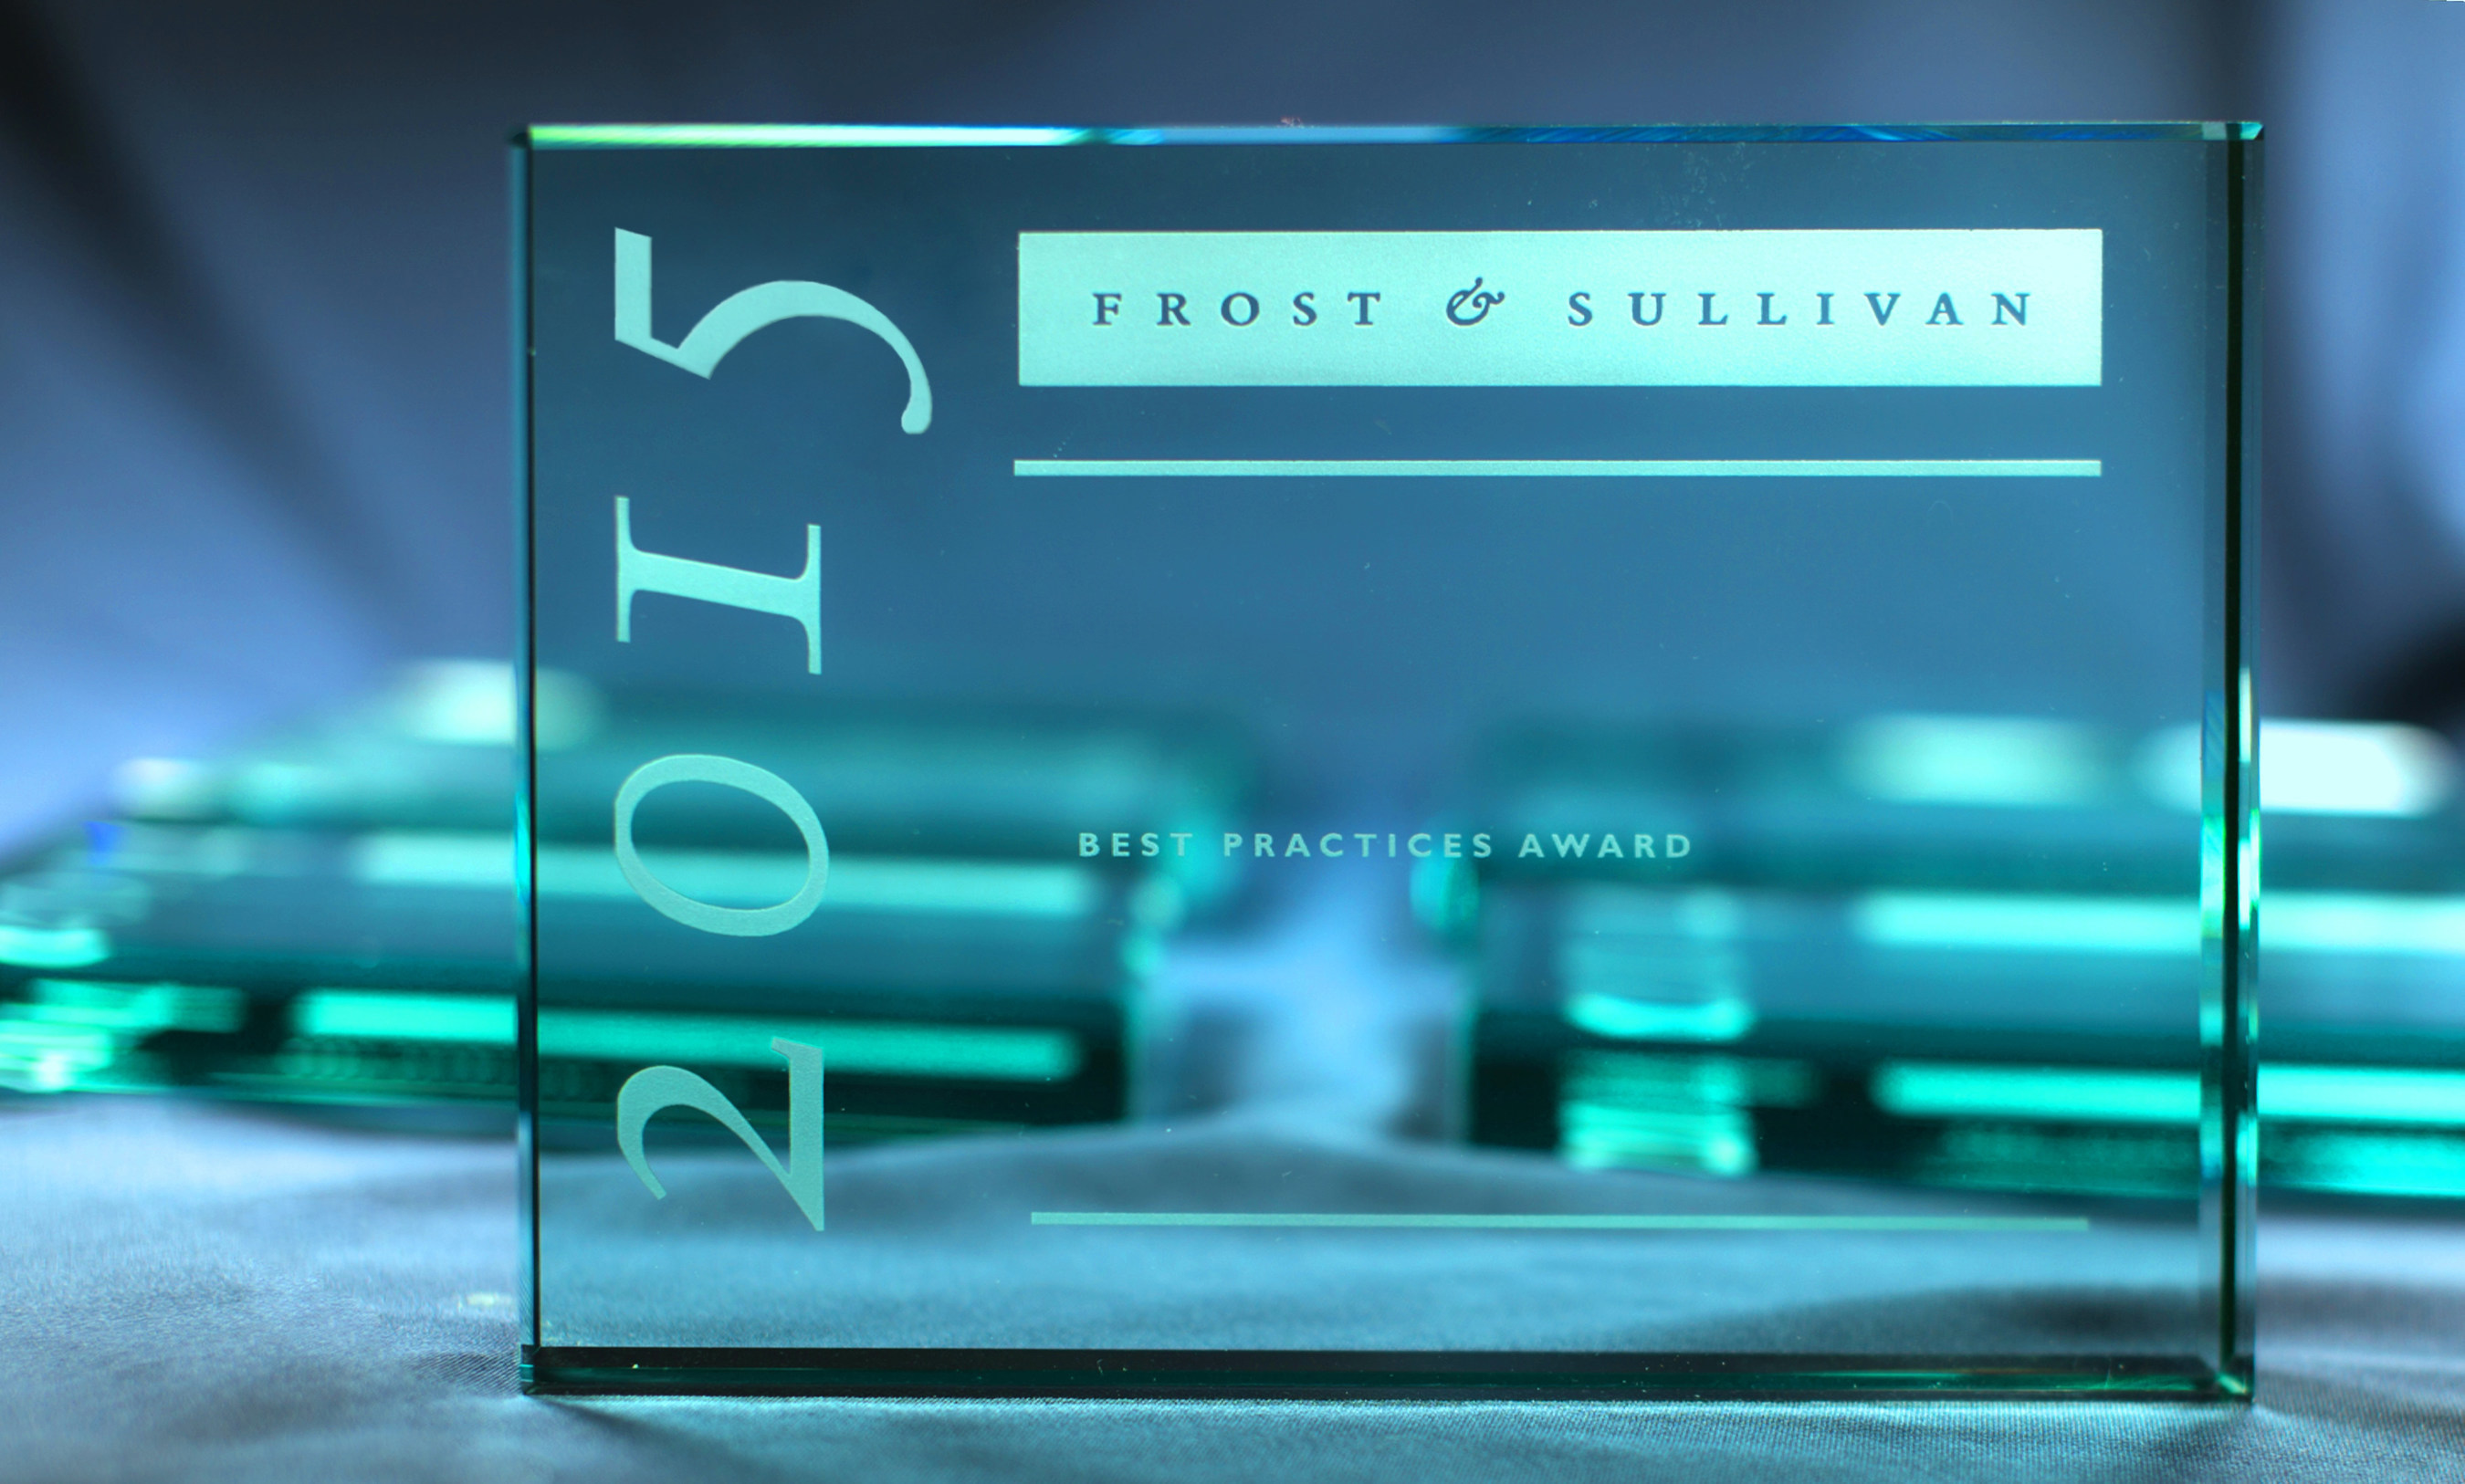 Frost & Sullivan Best Practices Awards to be presented at the Latin American Growth, Innovation &